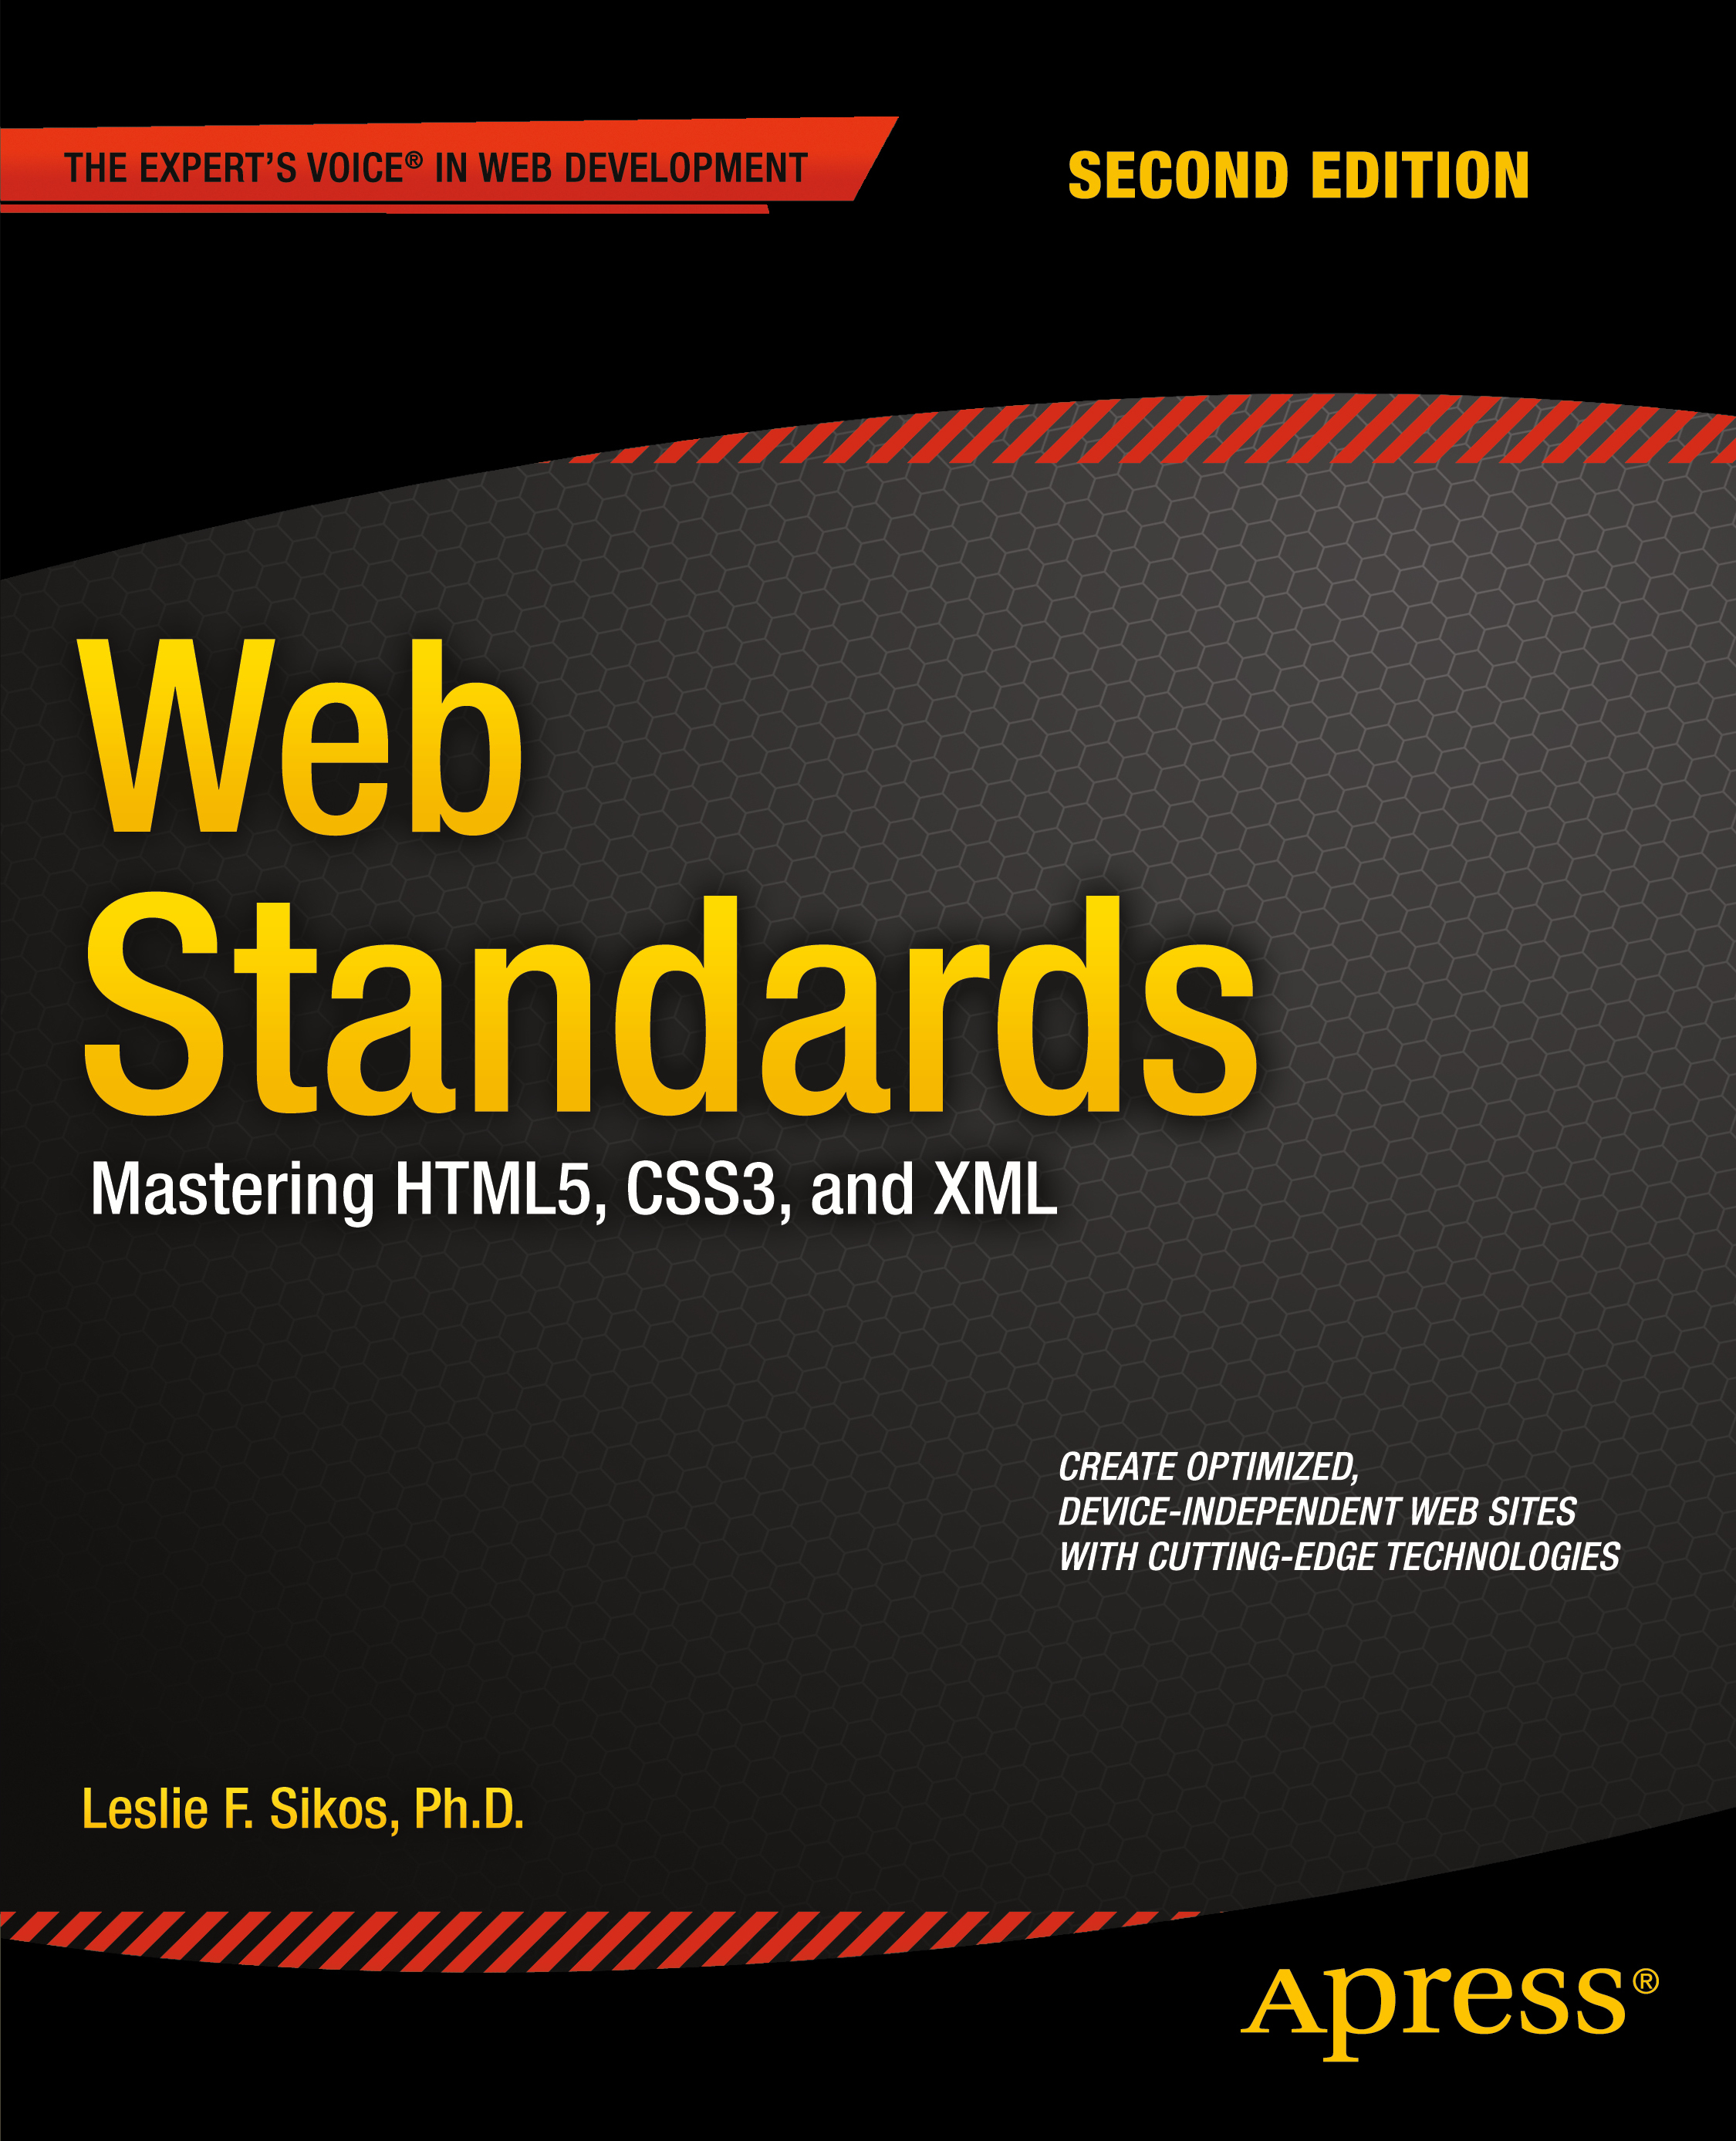 Book Cover Layout Xml : Web standards mastering html css and xml second